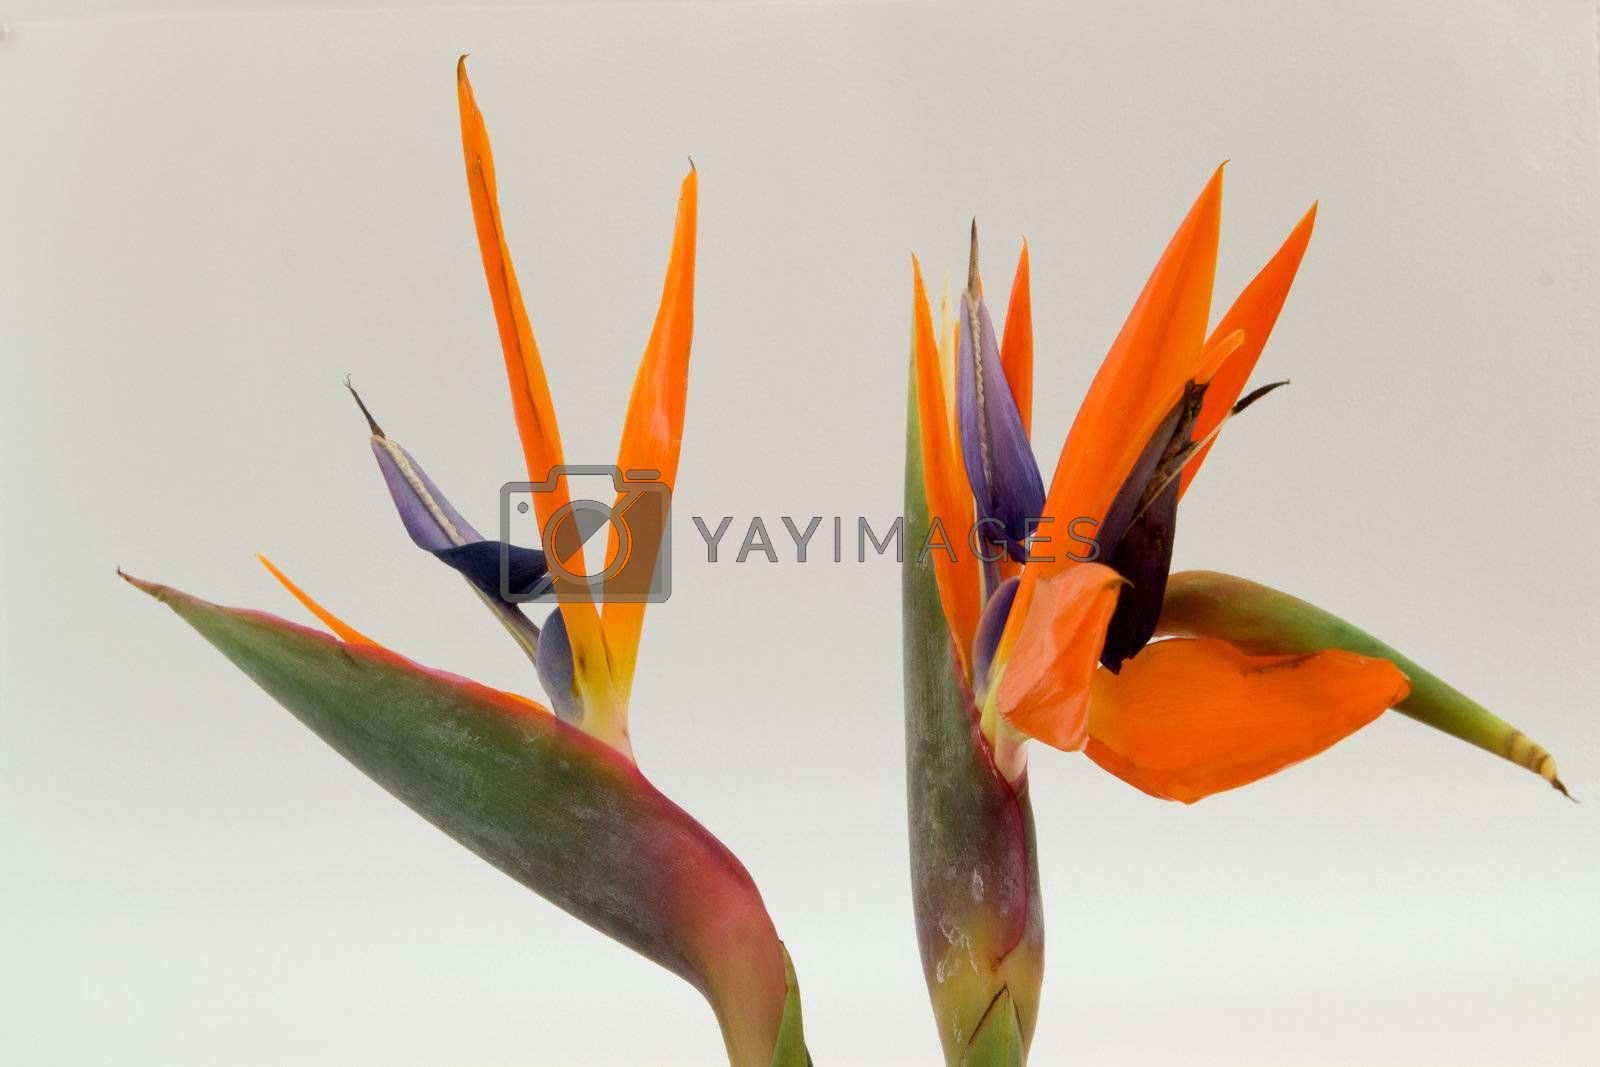 Two Bird of Paradise flowers isolated